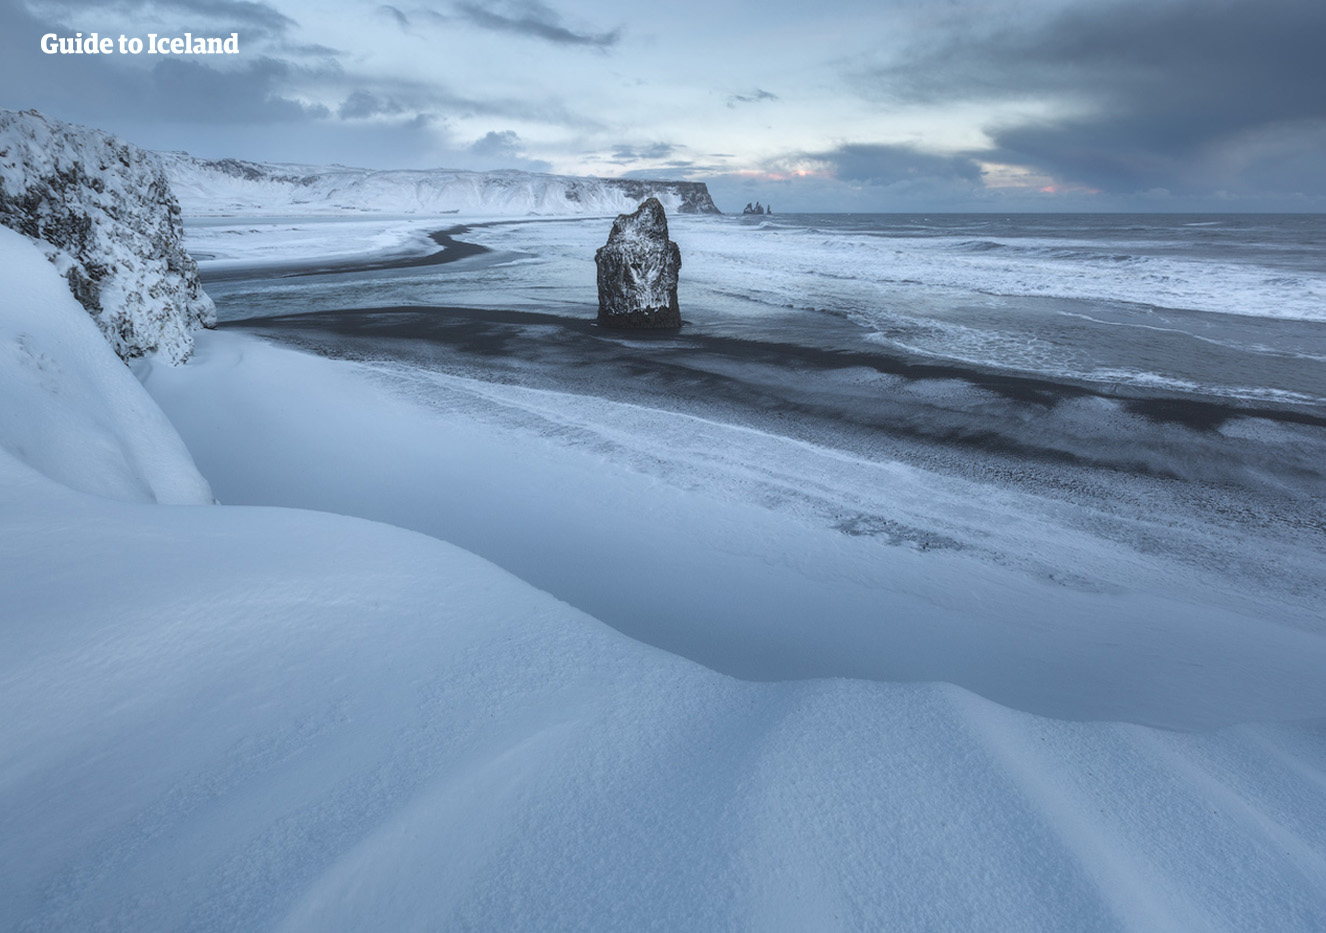 9 Day Northern Lights Winter Self Drive Tour of Iceland's Snaefellsnes Peninsula & South Coast - day 4